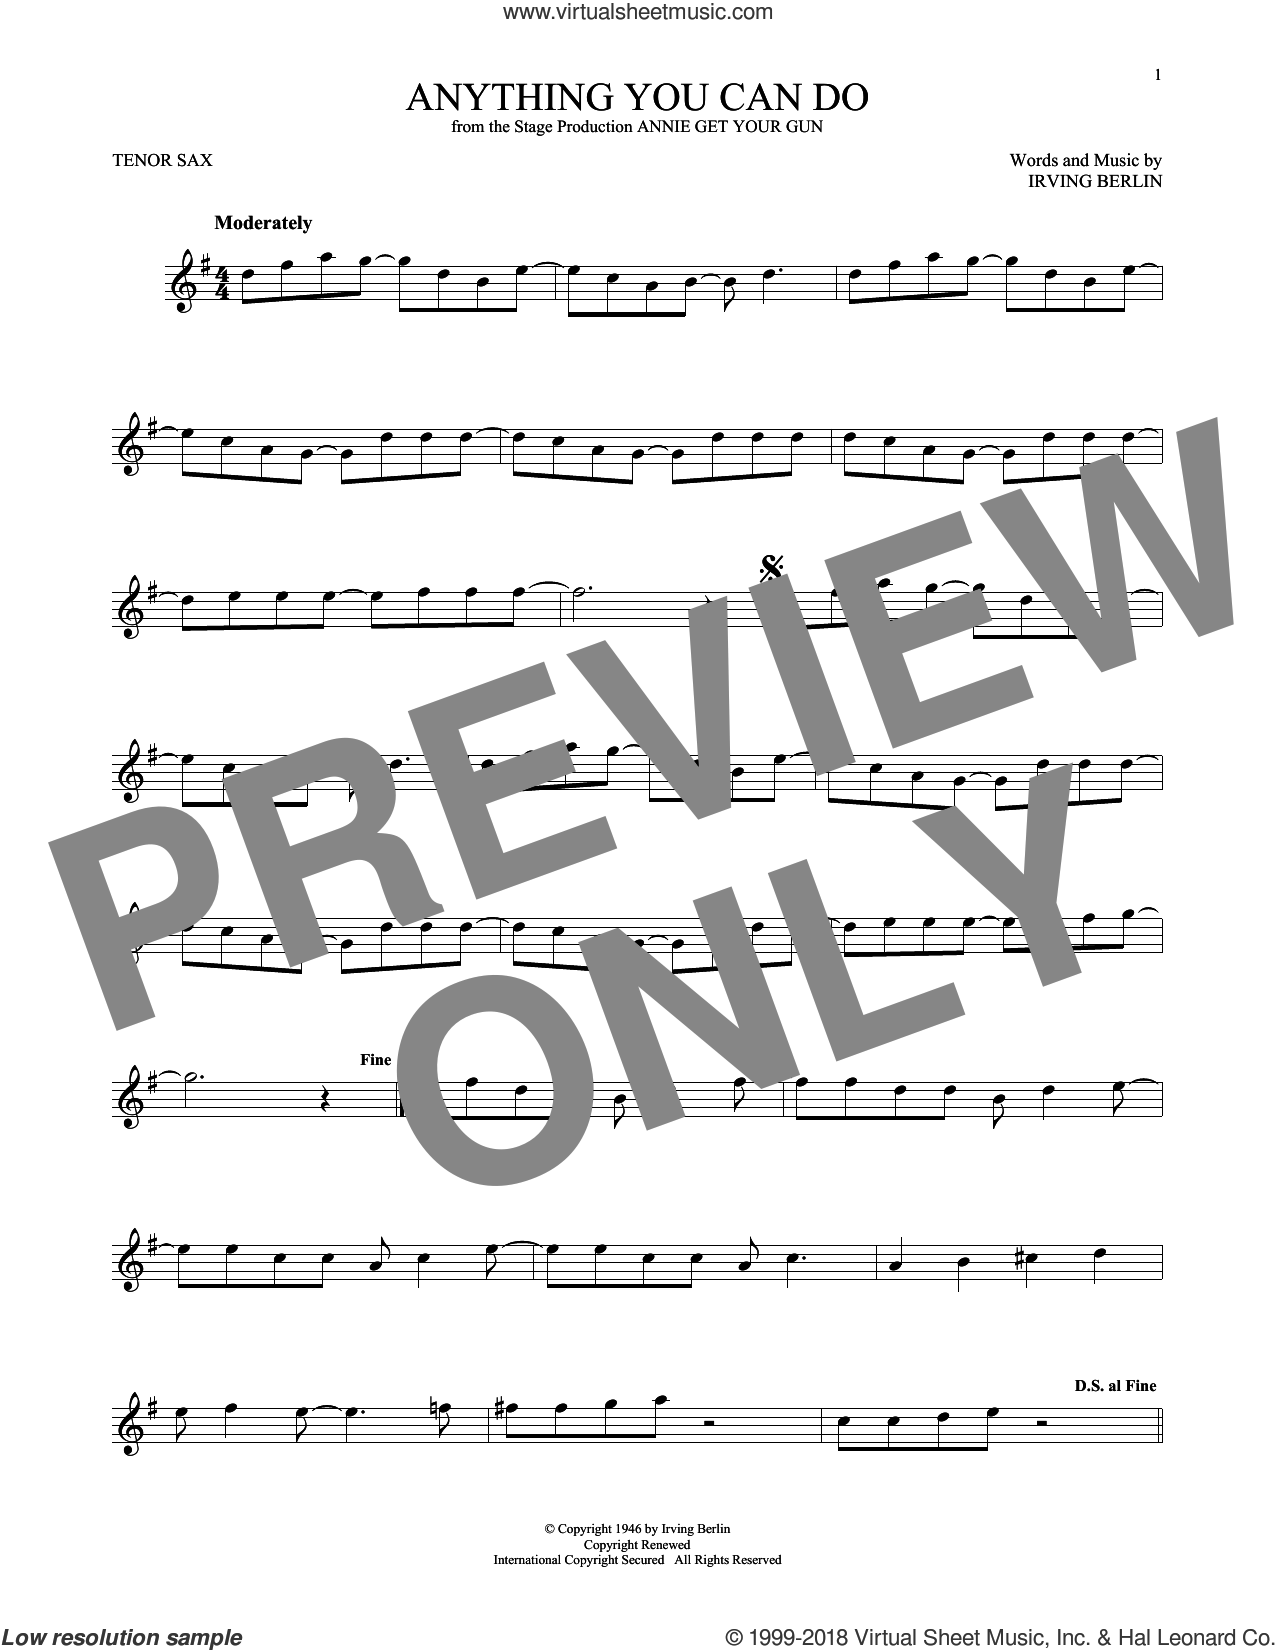 Anything You Can Do sheet music for tenor saxophone solo by Irving Berlin, intermediate skill level